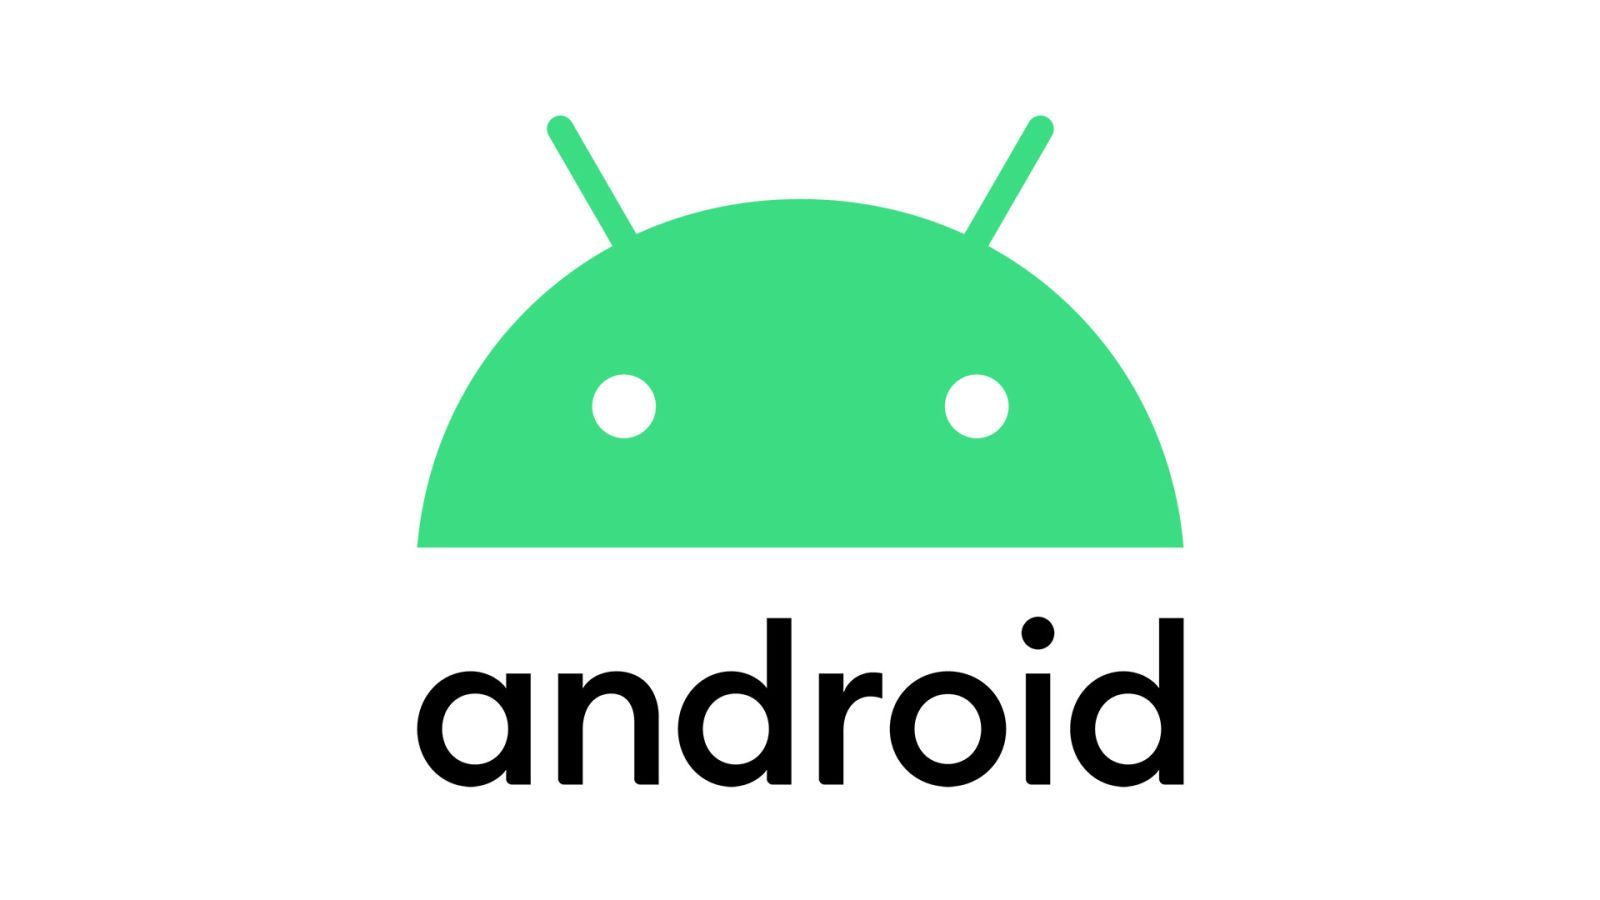 Google S Dessert Theme Meets Bittersweet End As Android Q Officially Becomes Android 10 Android Apps Android Application Android